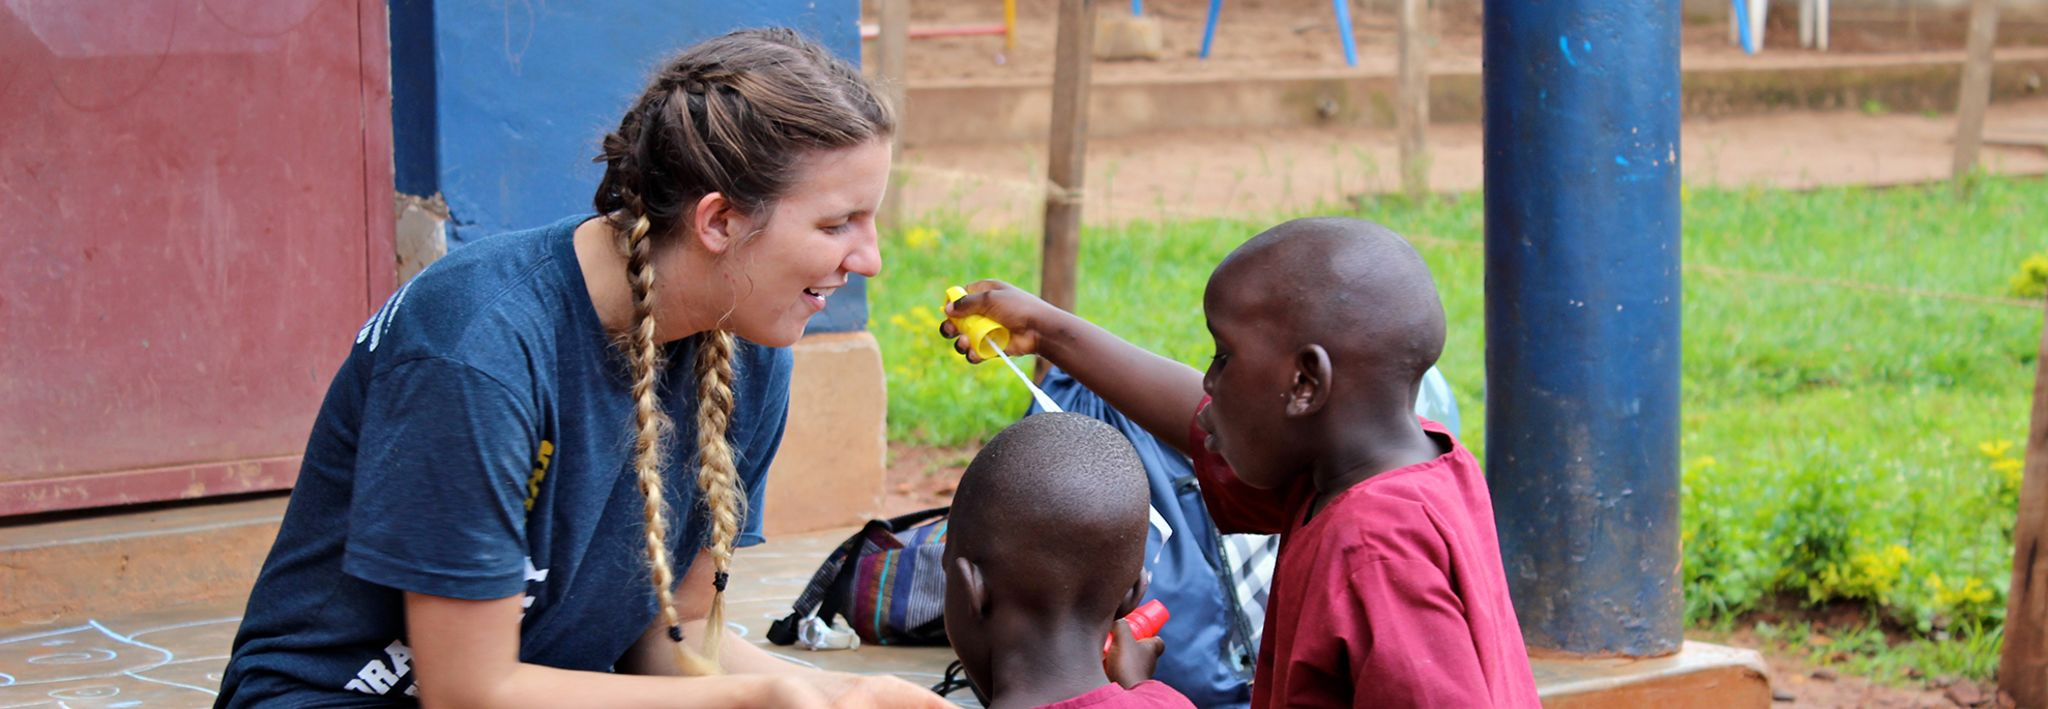 CCU student playing with kids in Uganda.